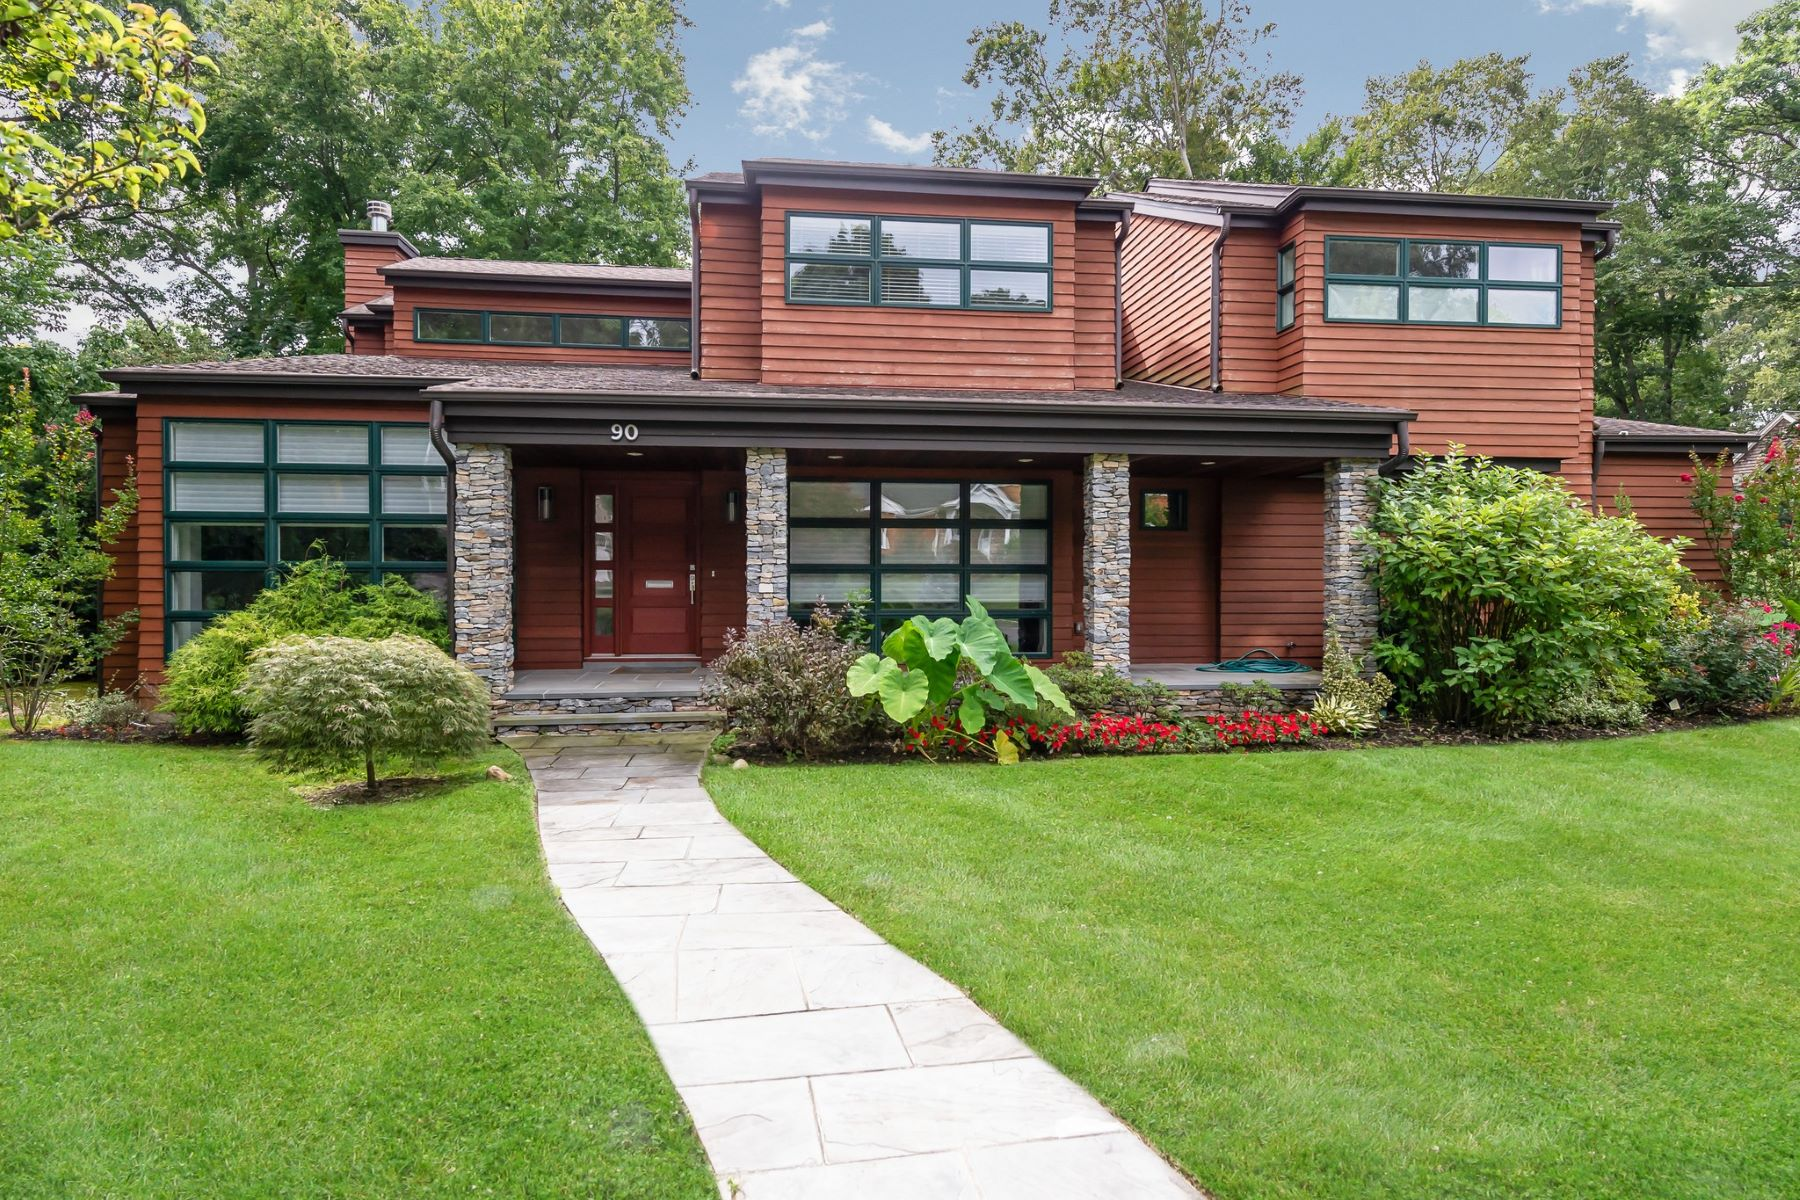 Single Family Homes for Active at East Hills 90 Revere Rd East Hills, New York 11577 United States